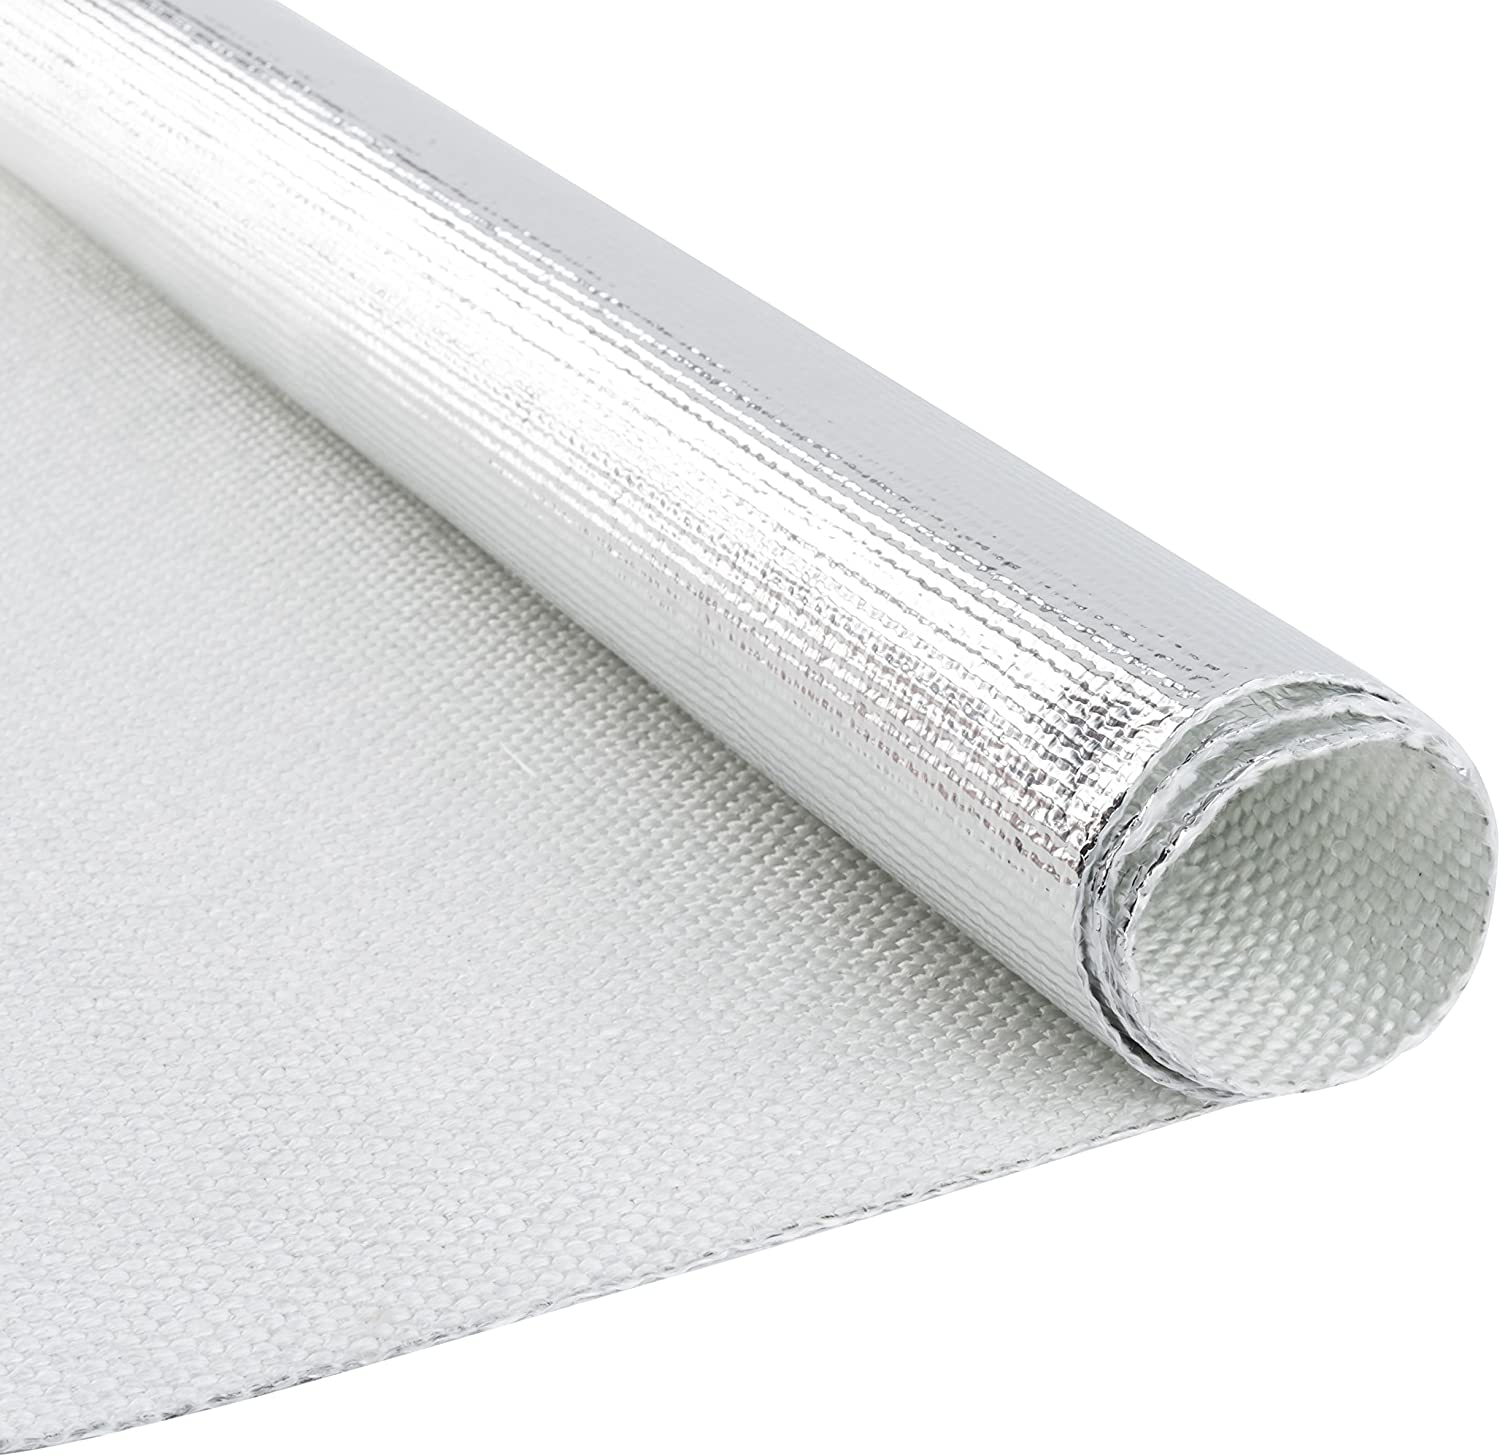 Newtex Z-Flex Challenge the lowest price of Japan A-801 Aluminum with New arrival Backing Fiberglass Y Fabric 1